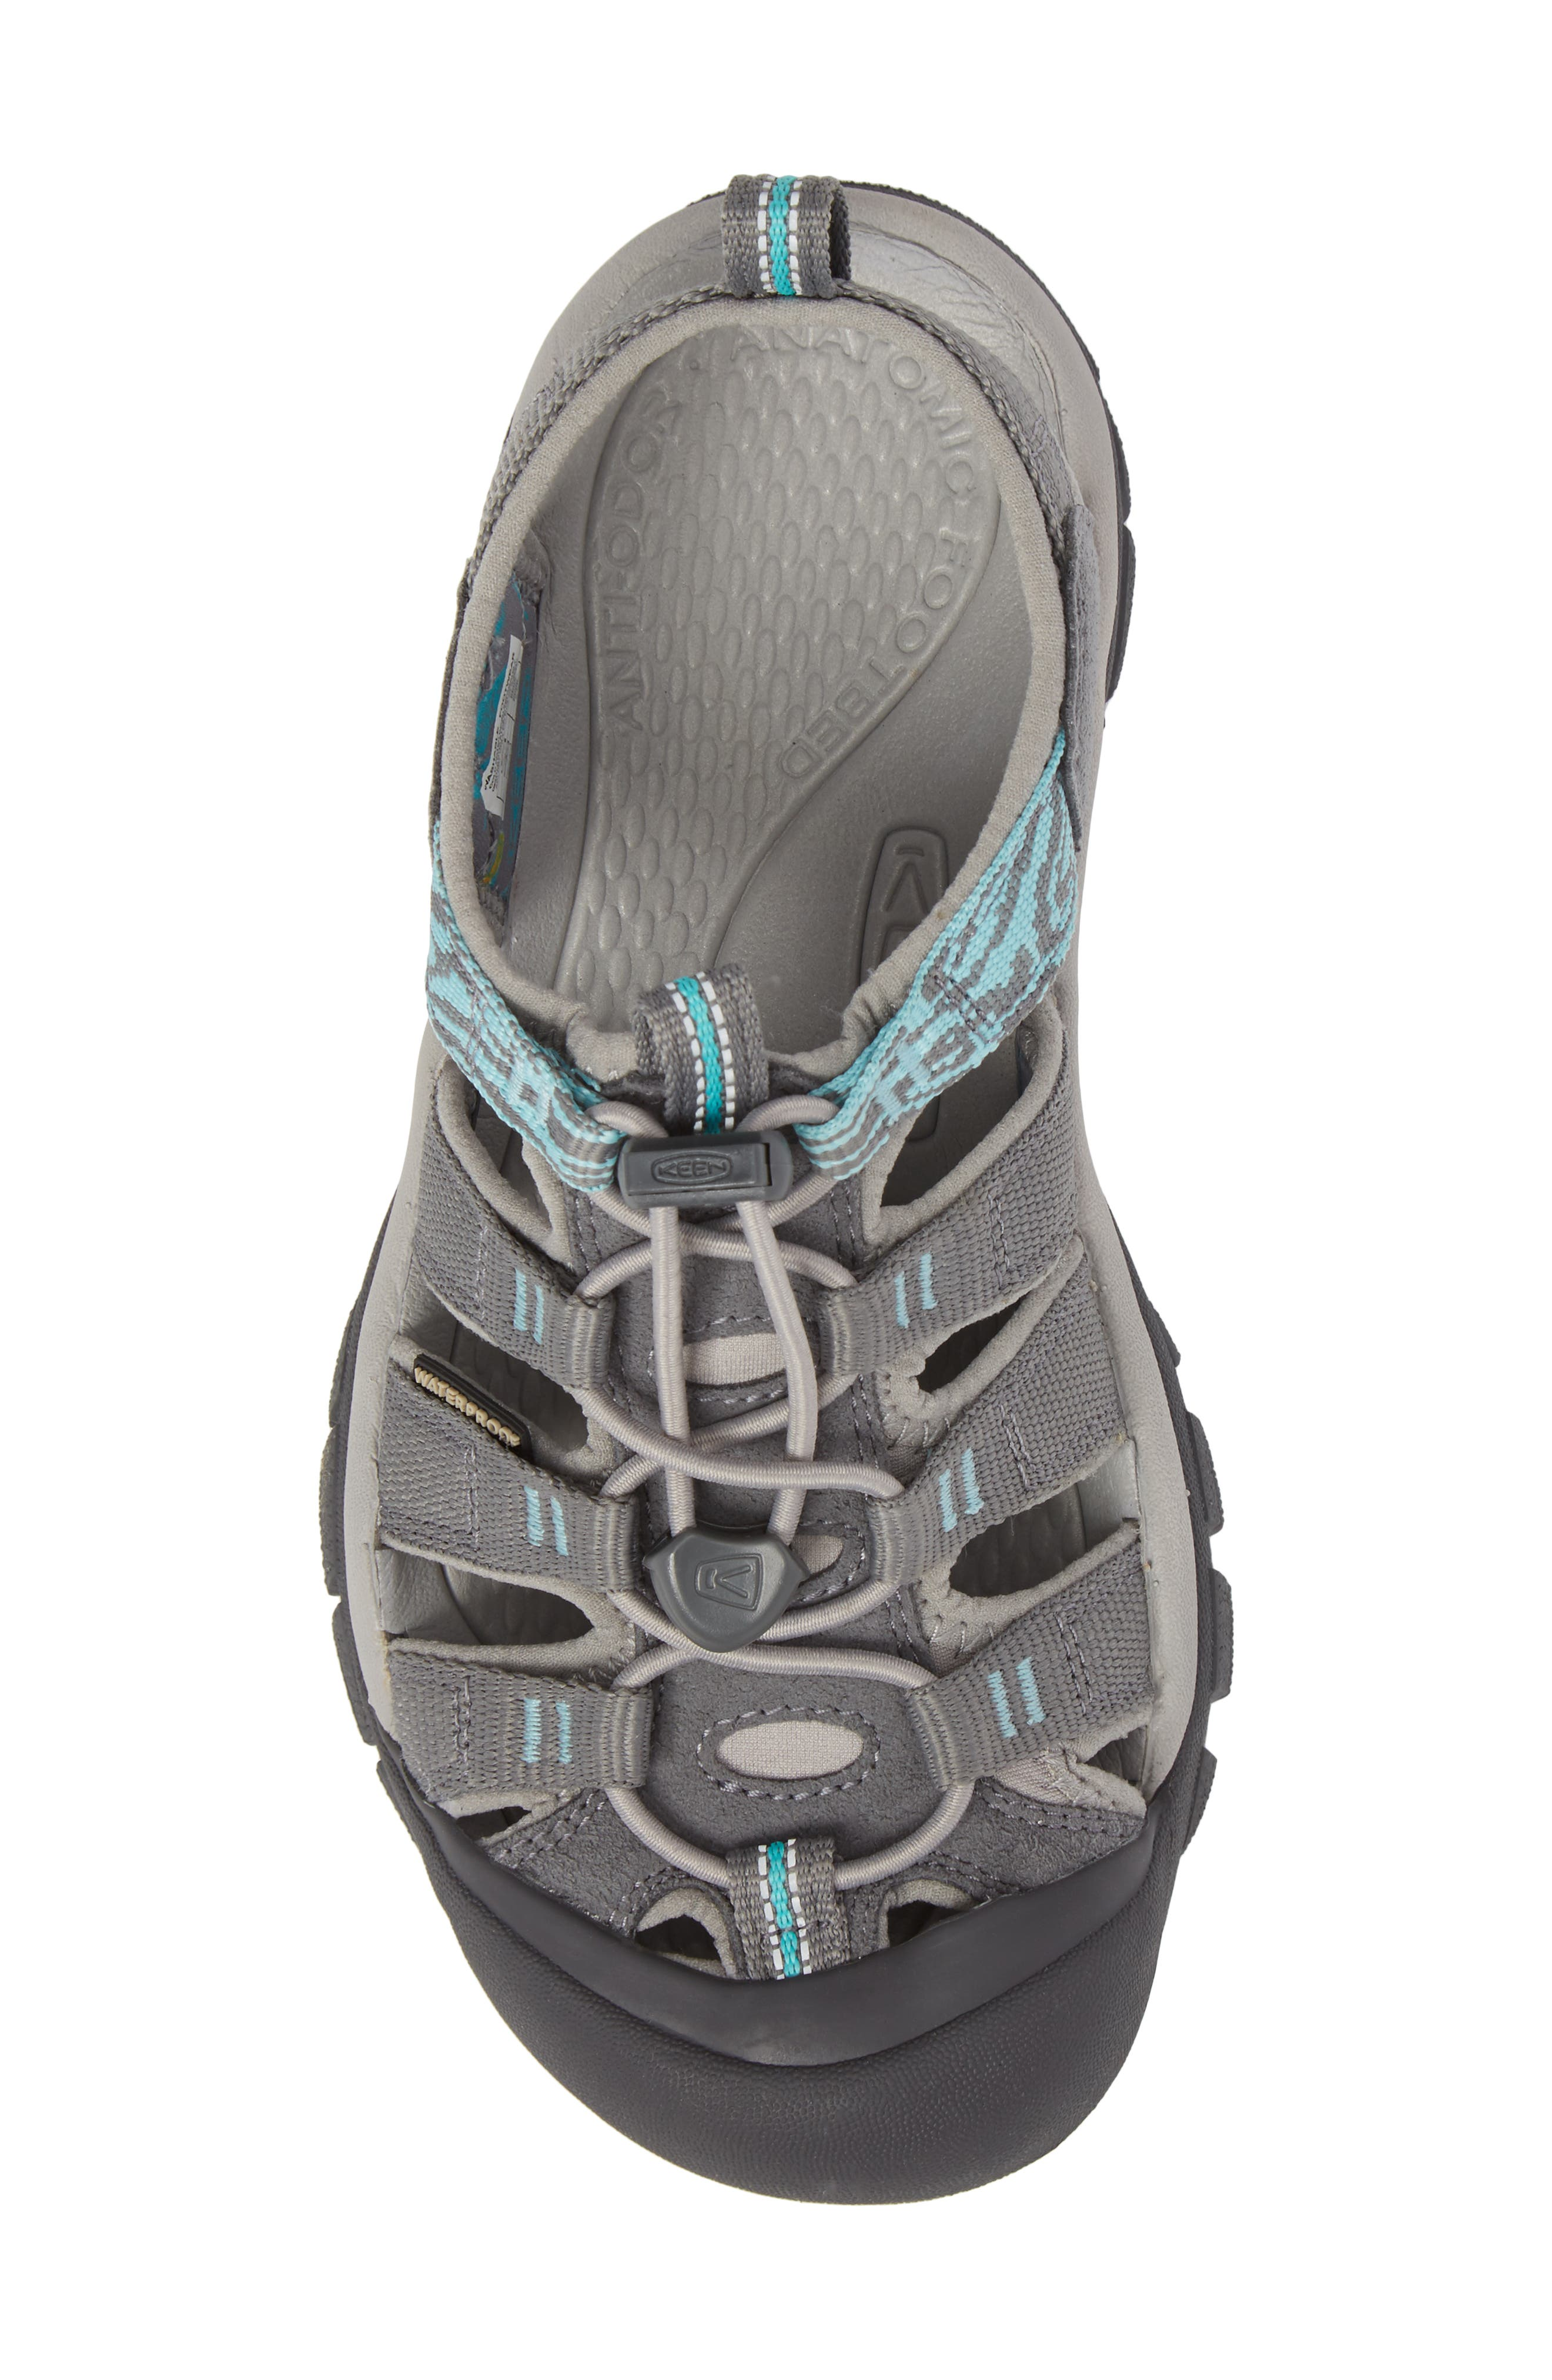 Newport Hydro Sandal,                             Alternate thumbnail 5, color,                             Steel Grey/ Blue Turquoise